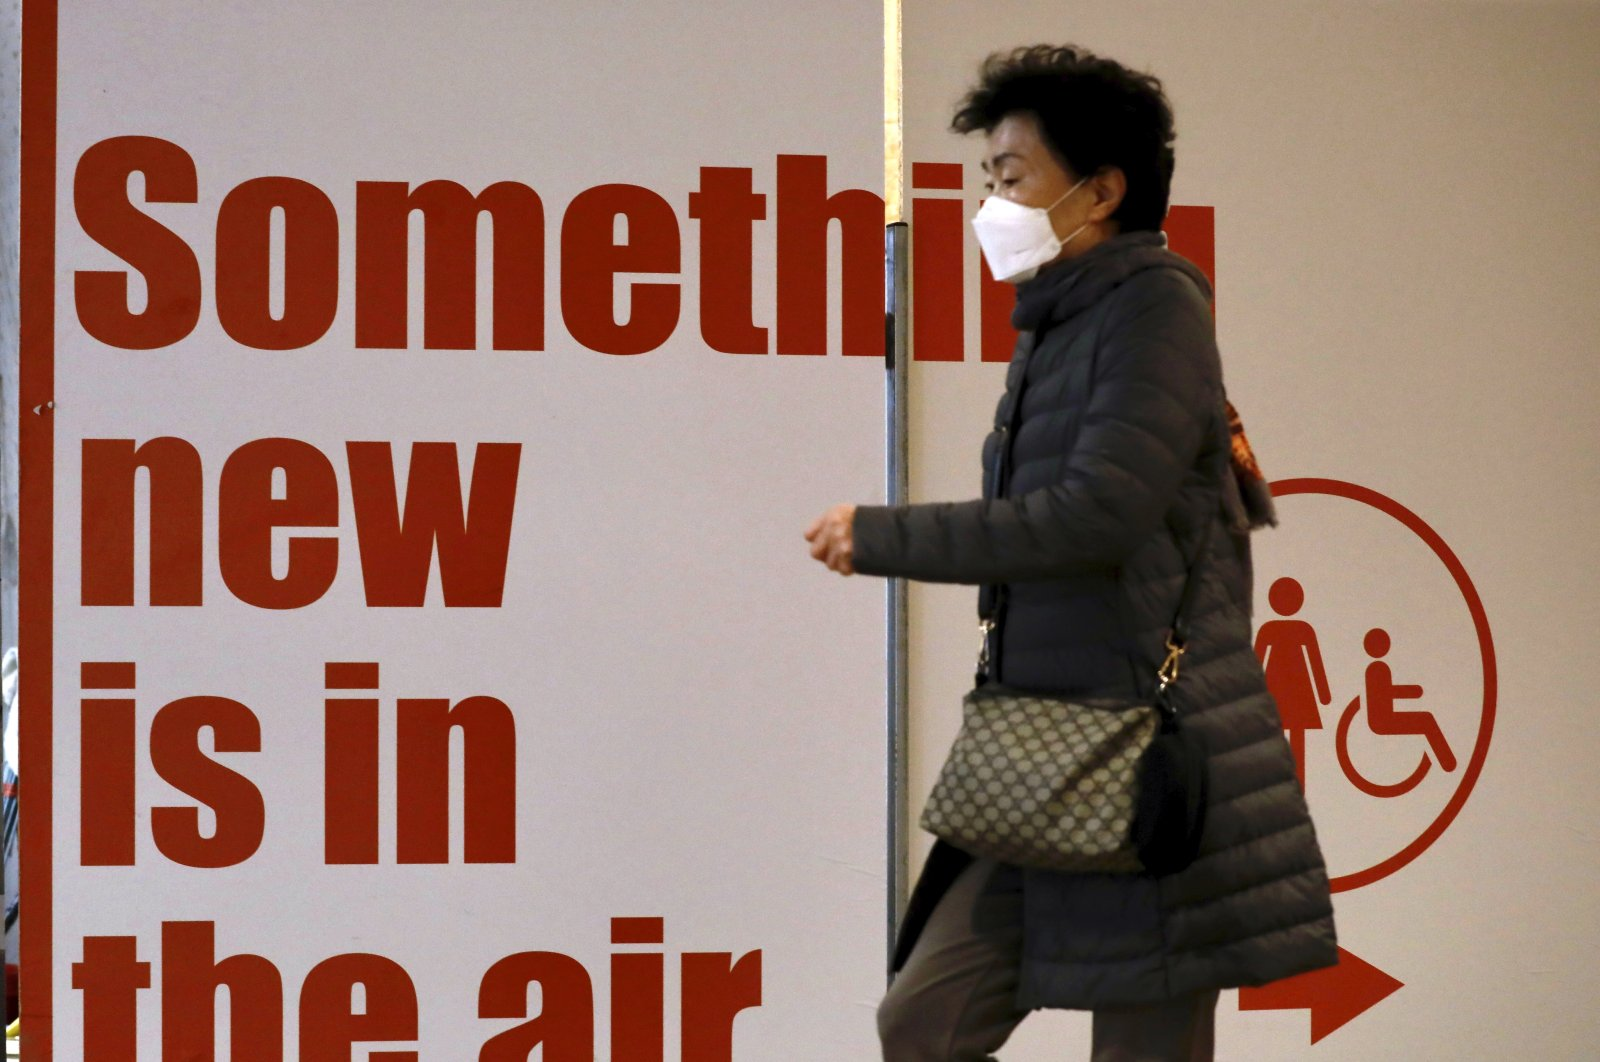 A tourist from South Korea wears a protective mask while waiting for a flight back to South Korea at the Ben Gurion airport near Tel Aviv, Israel, Feb. 24, 2020. (AP Photo)